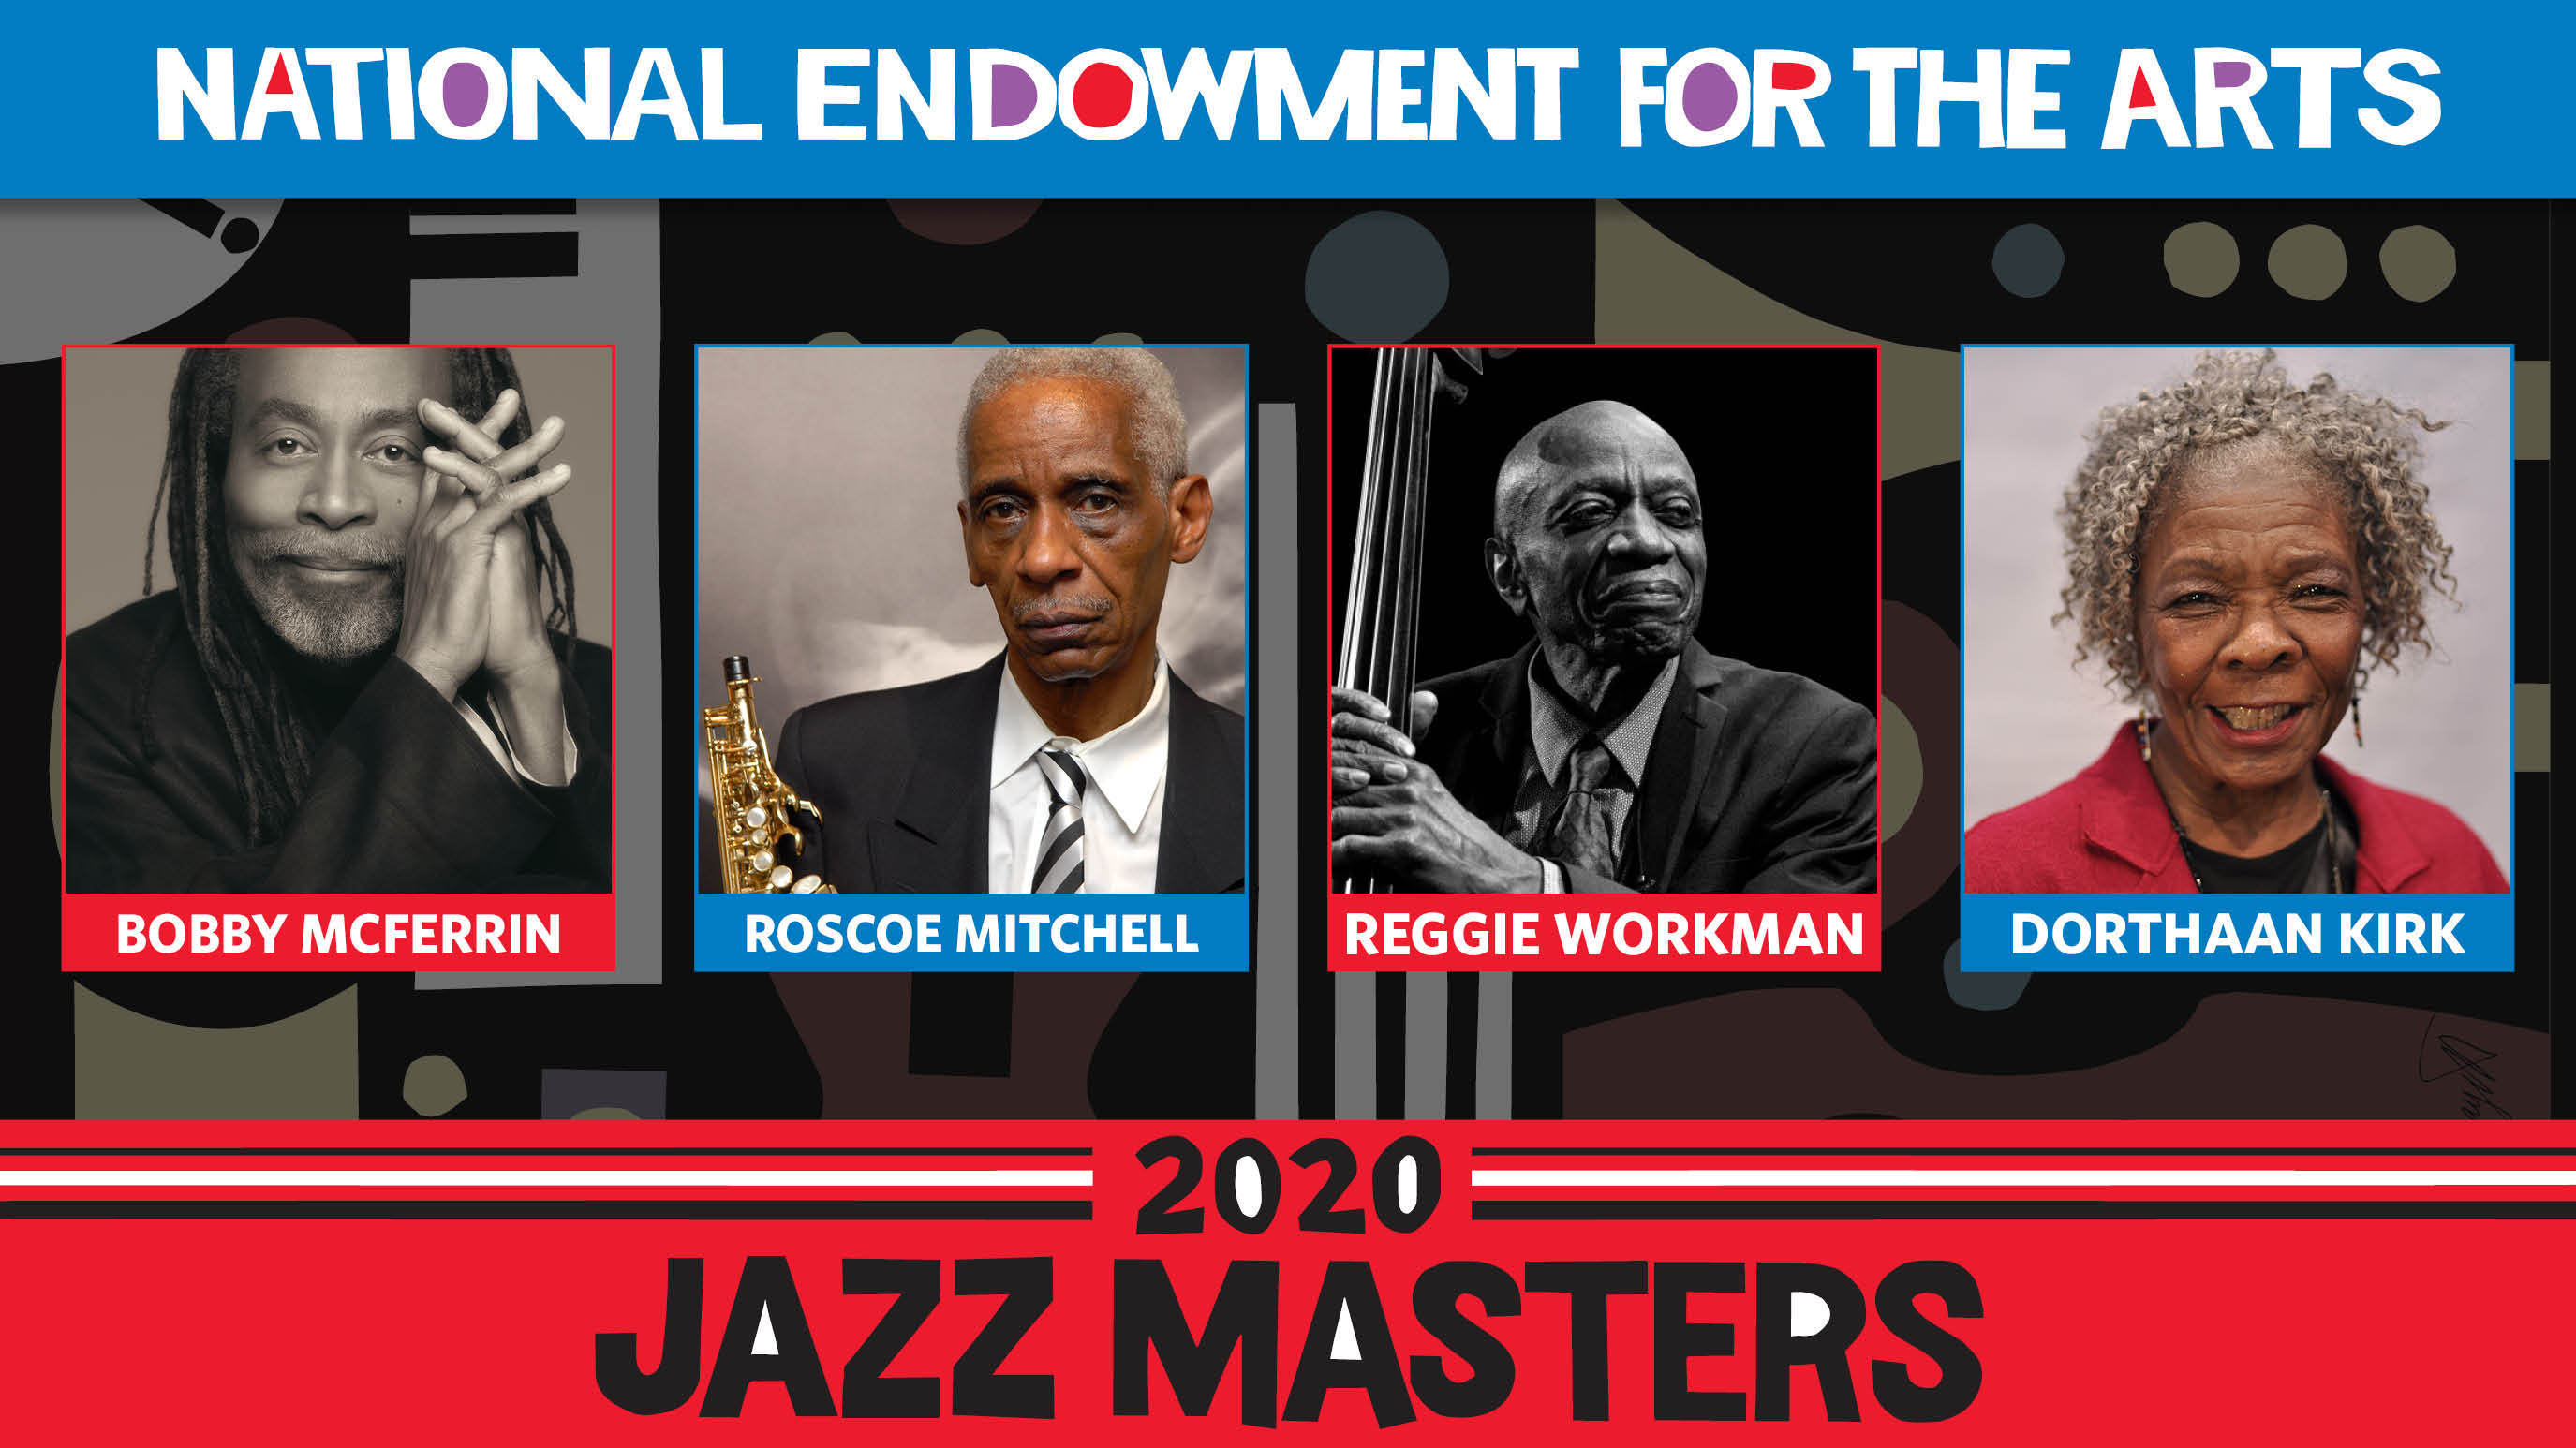 Meet The NEA's 2020 Jazz Masters: McFerrin, Mitchell, Workman And Kirk